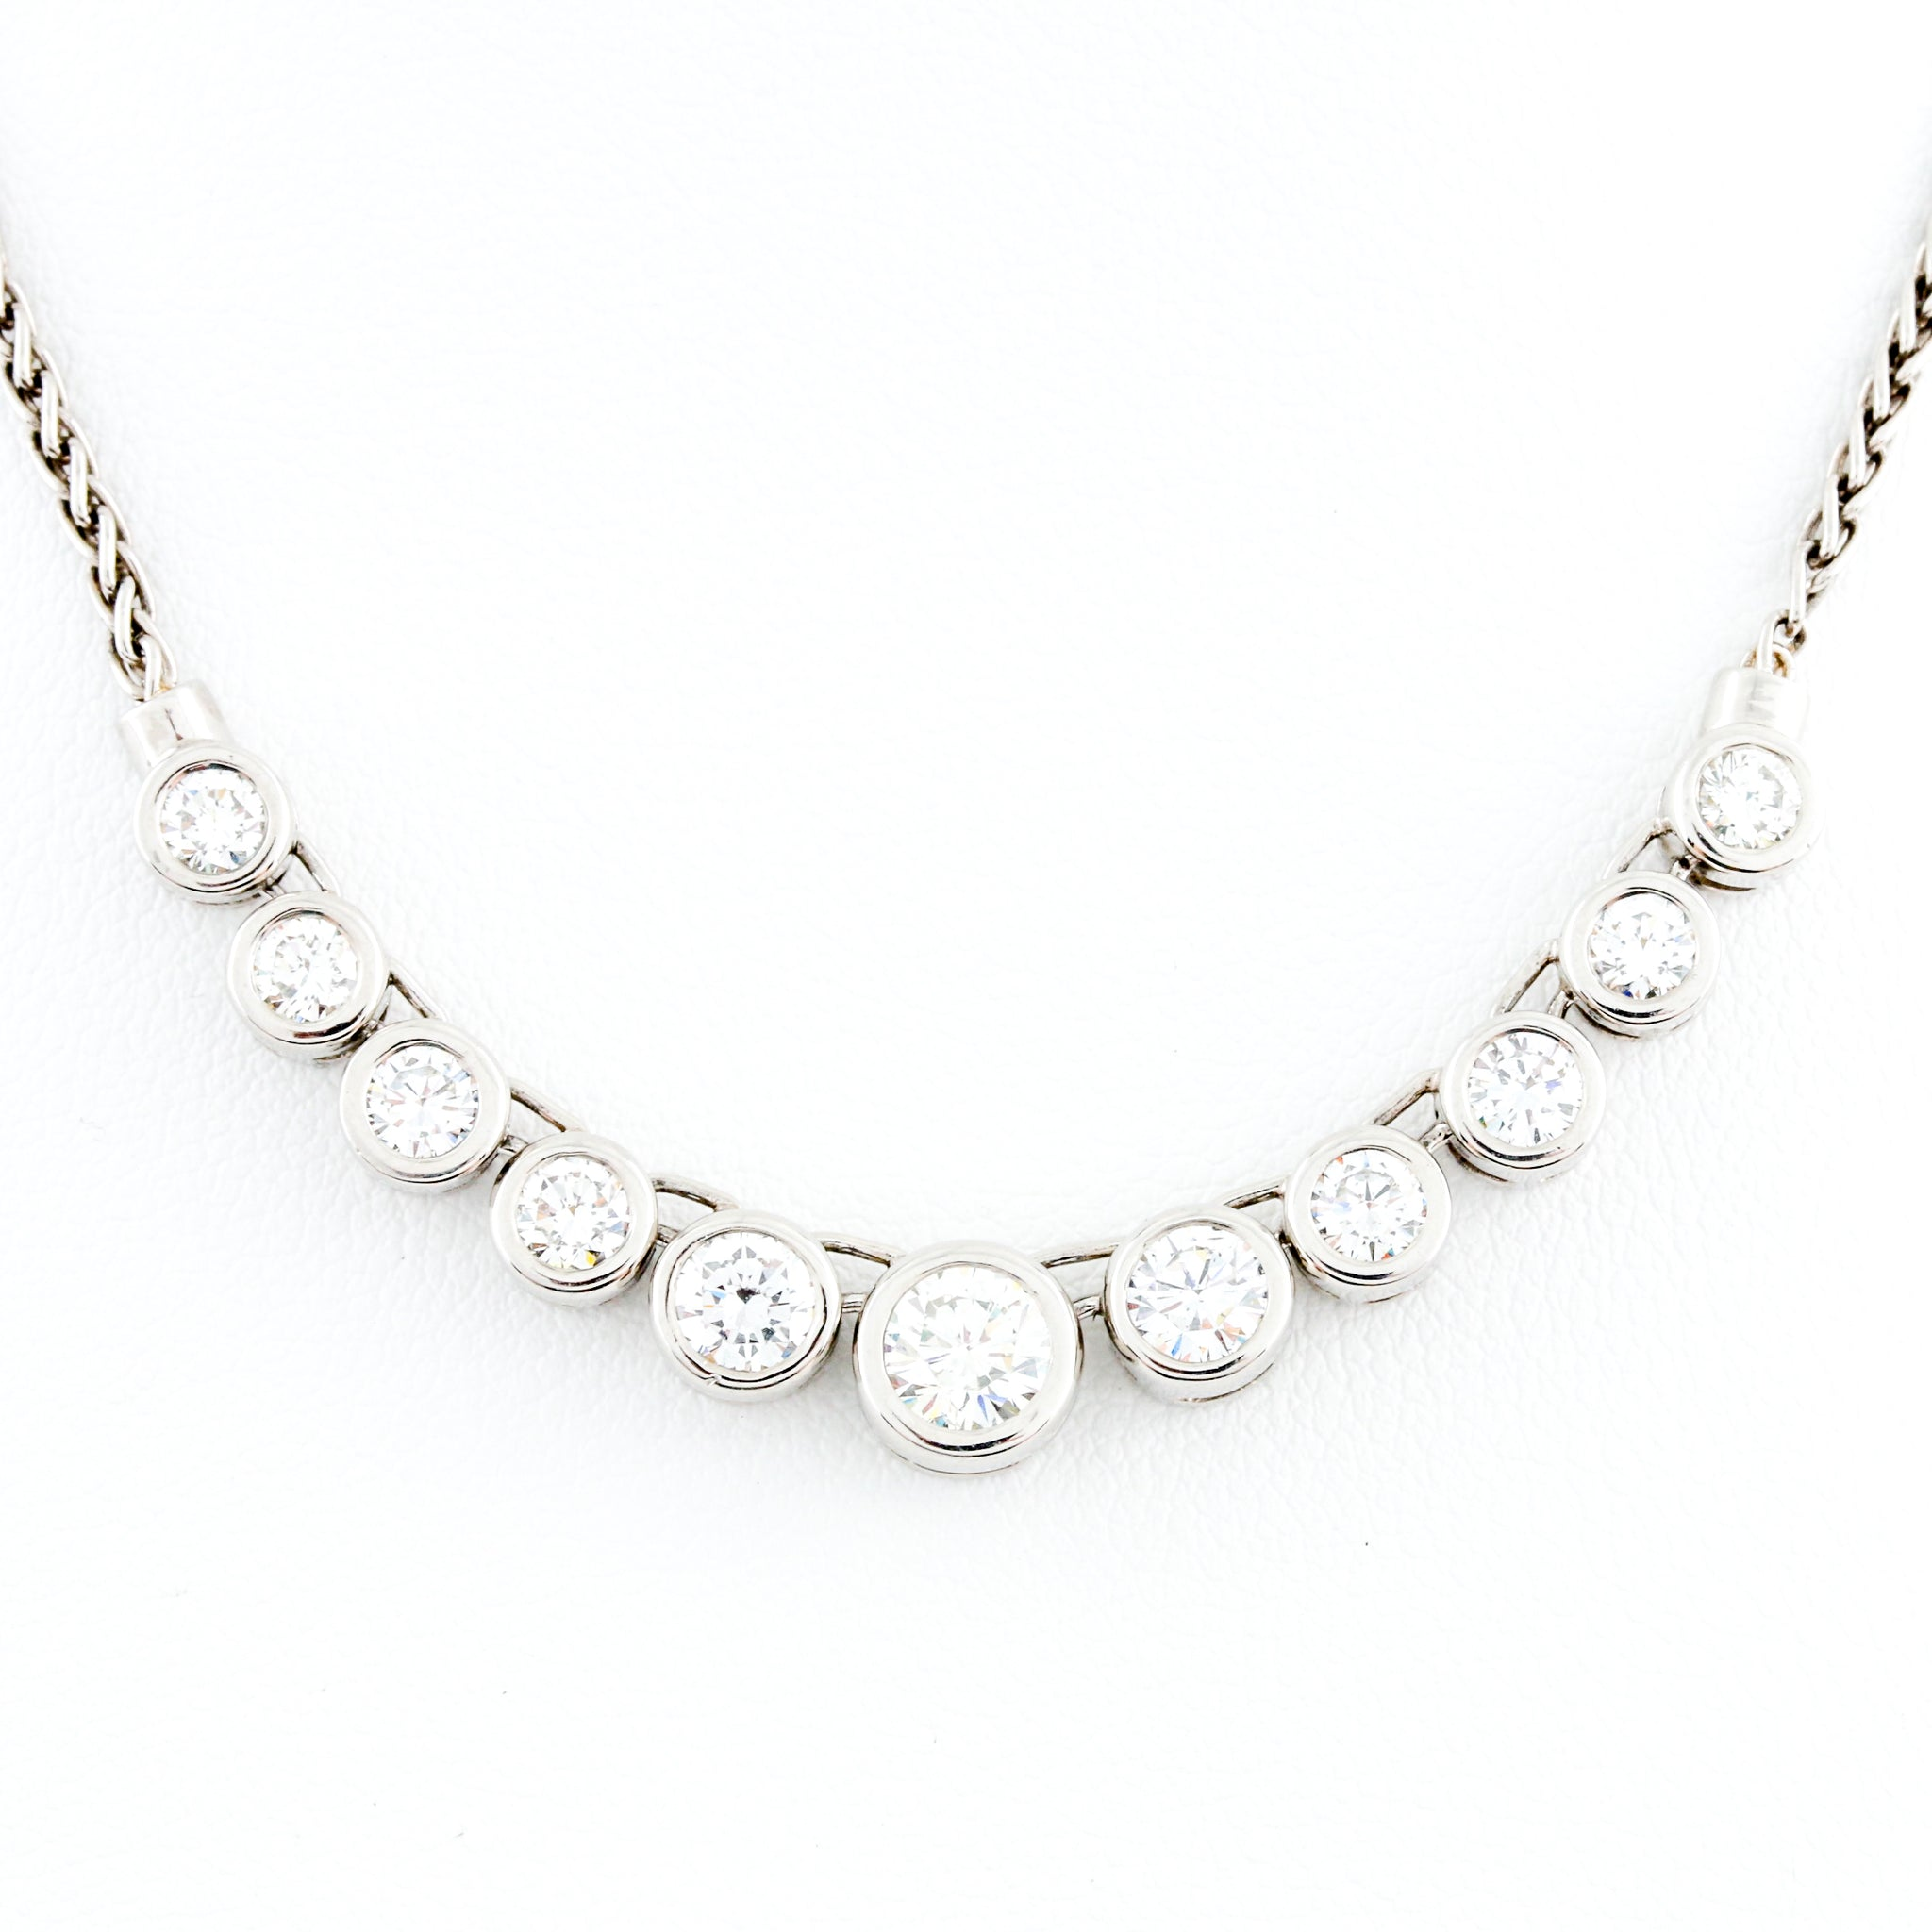 *SOLD* Diamonds in Platinum Necklace - Sindur Style